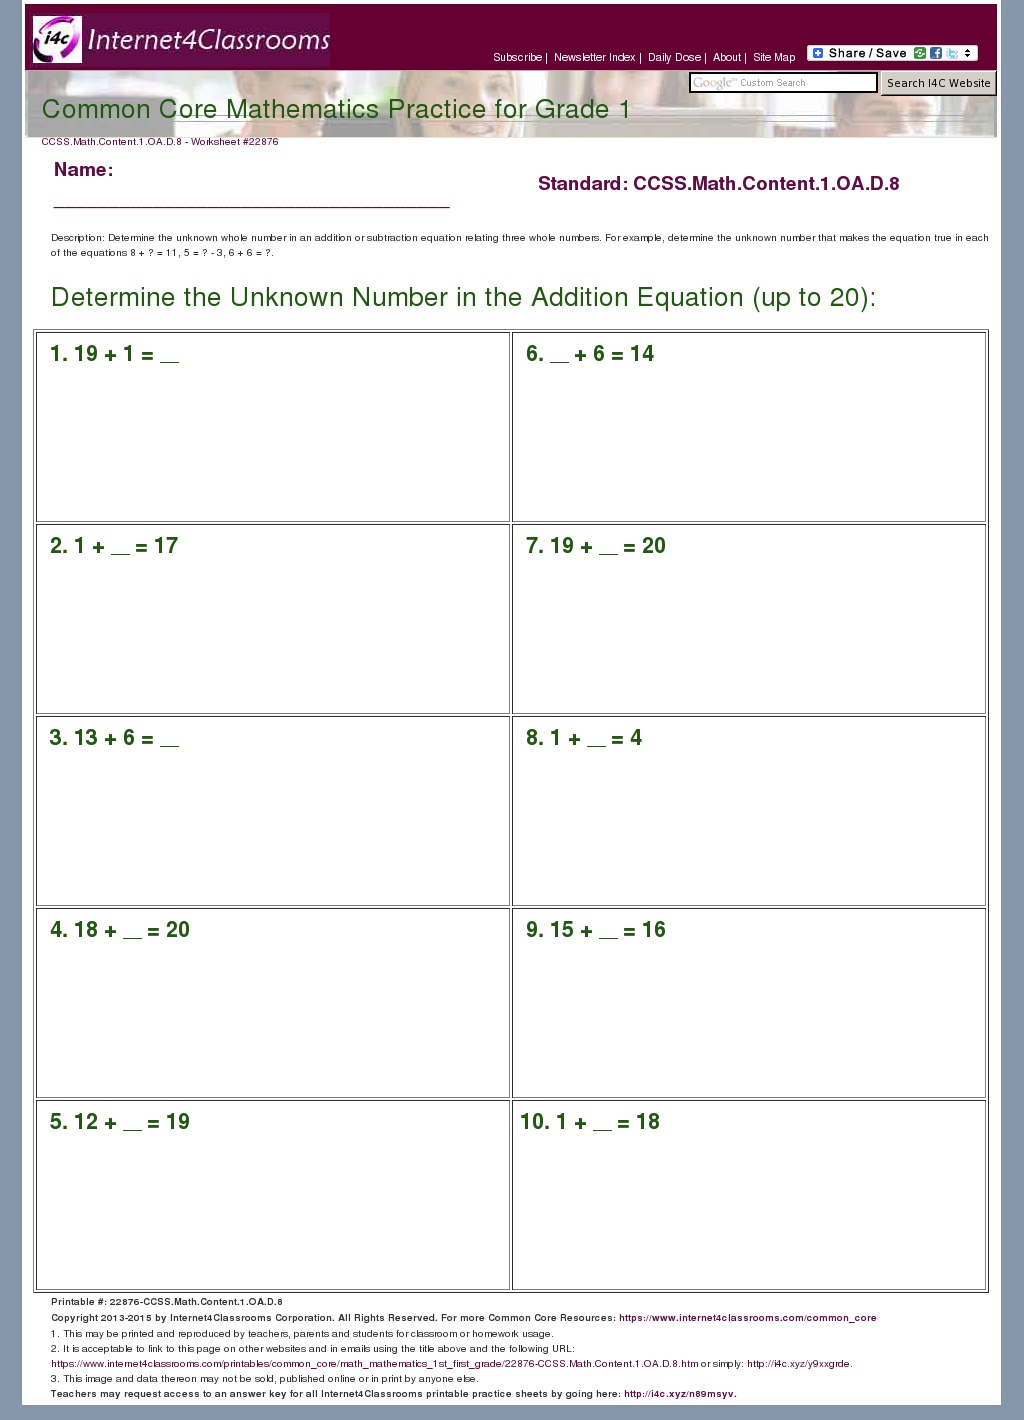 Association Worksheet